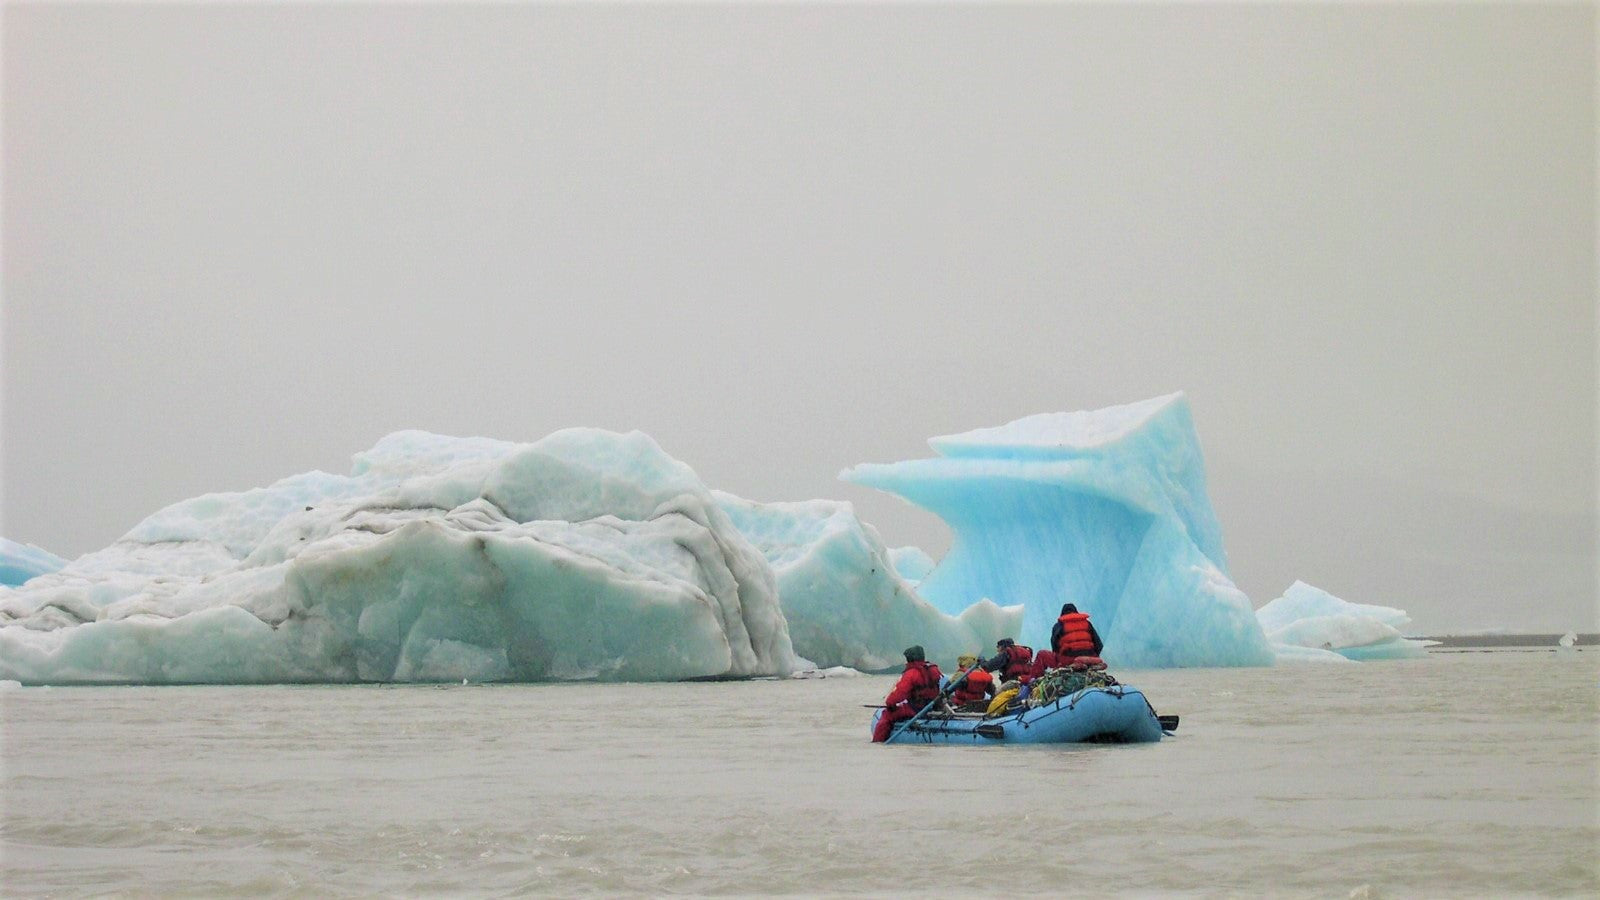 team of rafters by icebergs